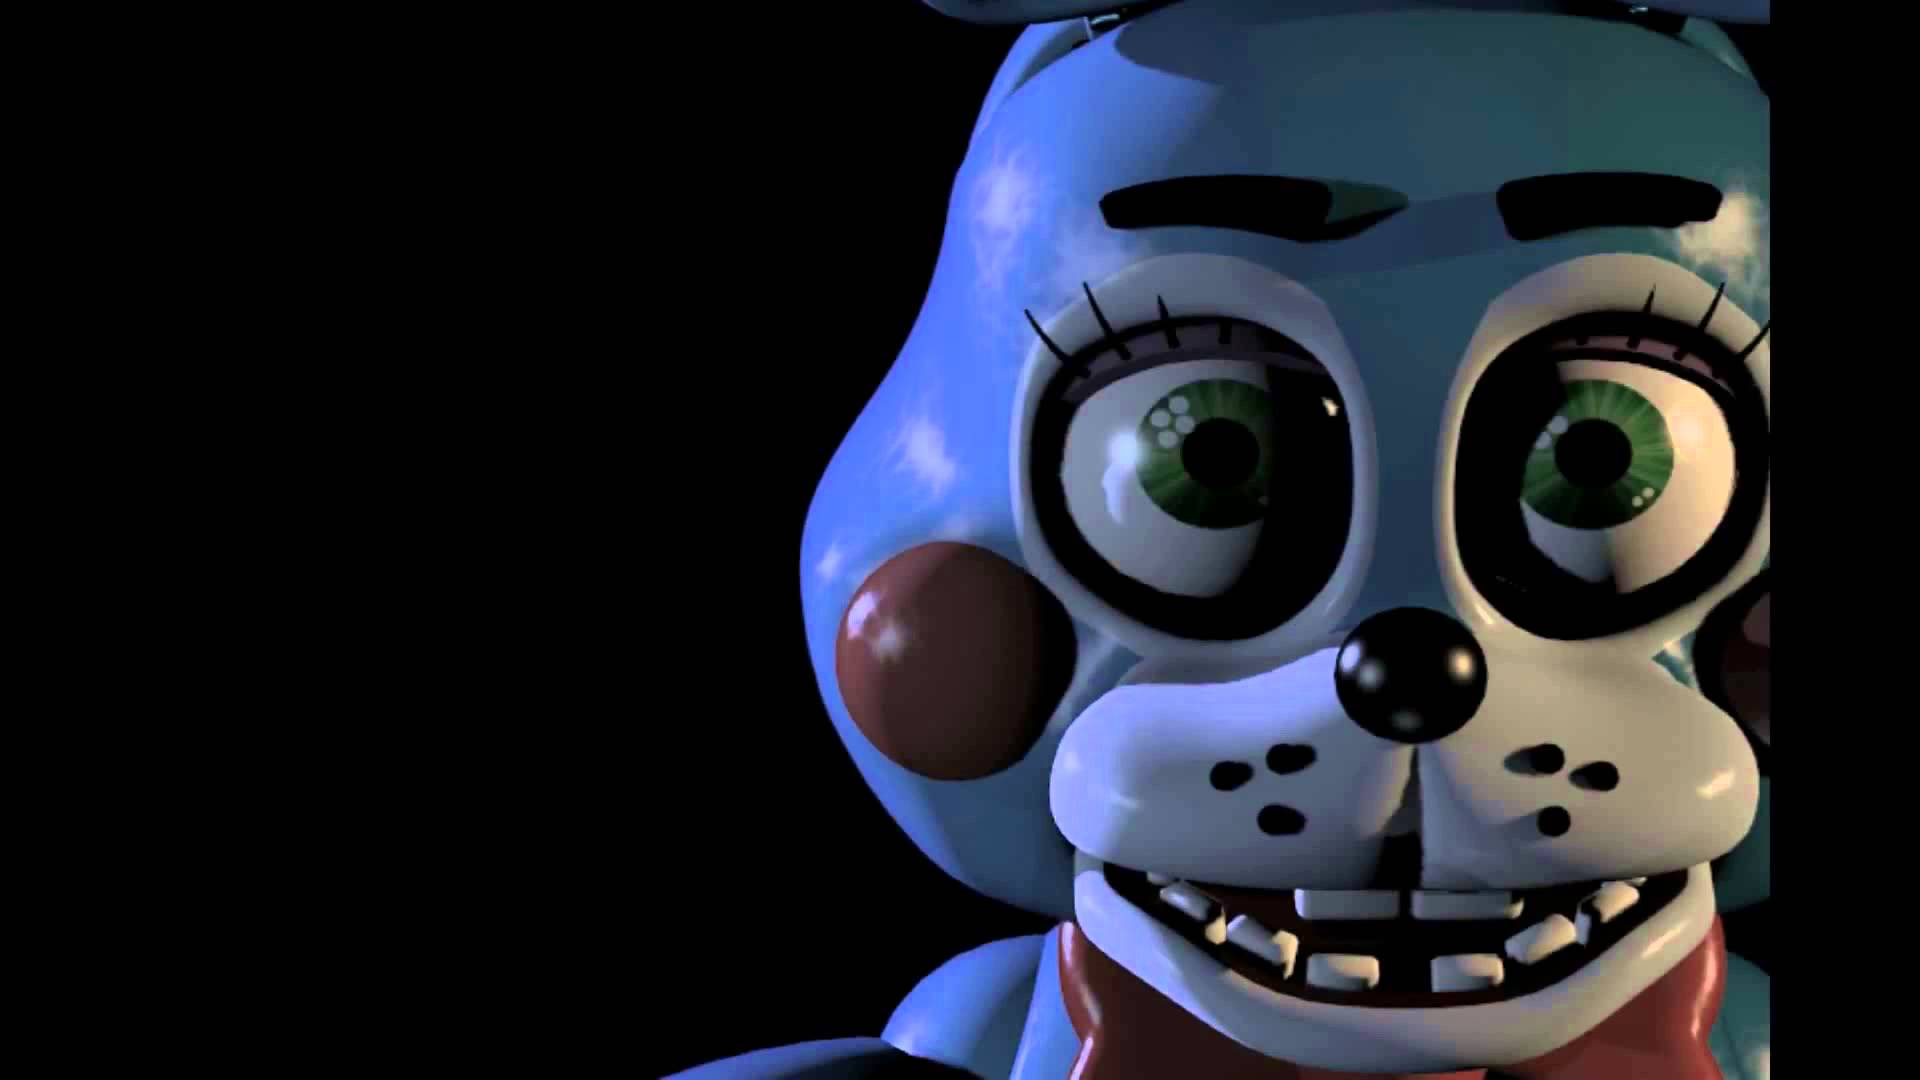 bonnie toy freddy 39 s nights at five Quotes